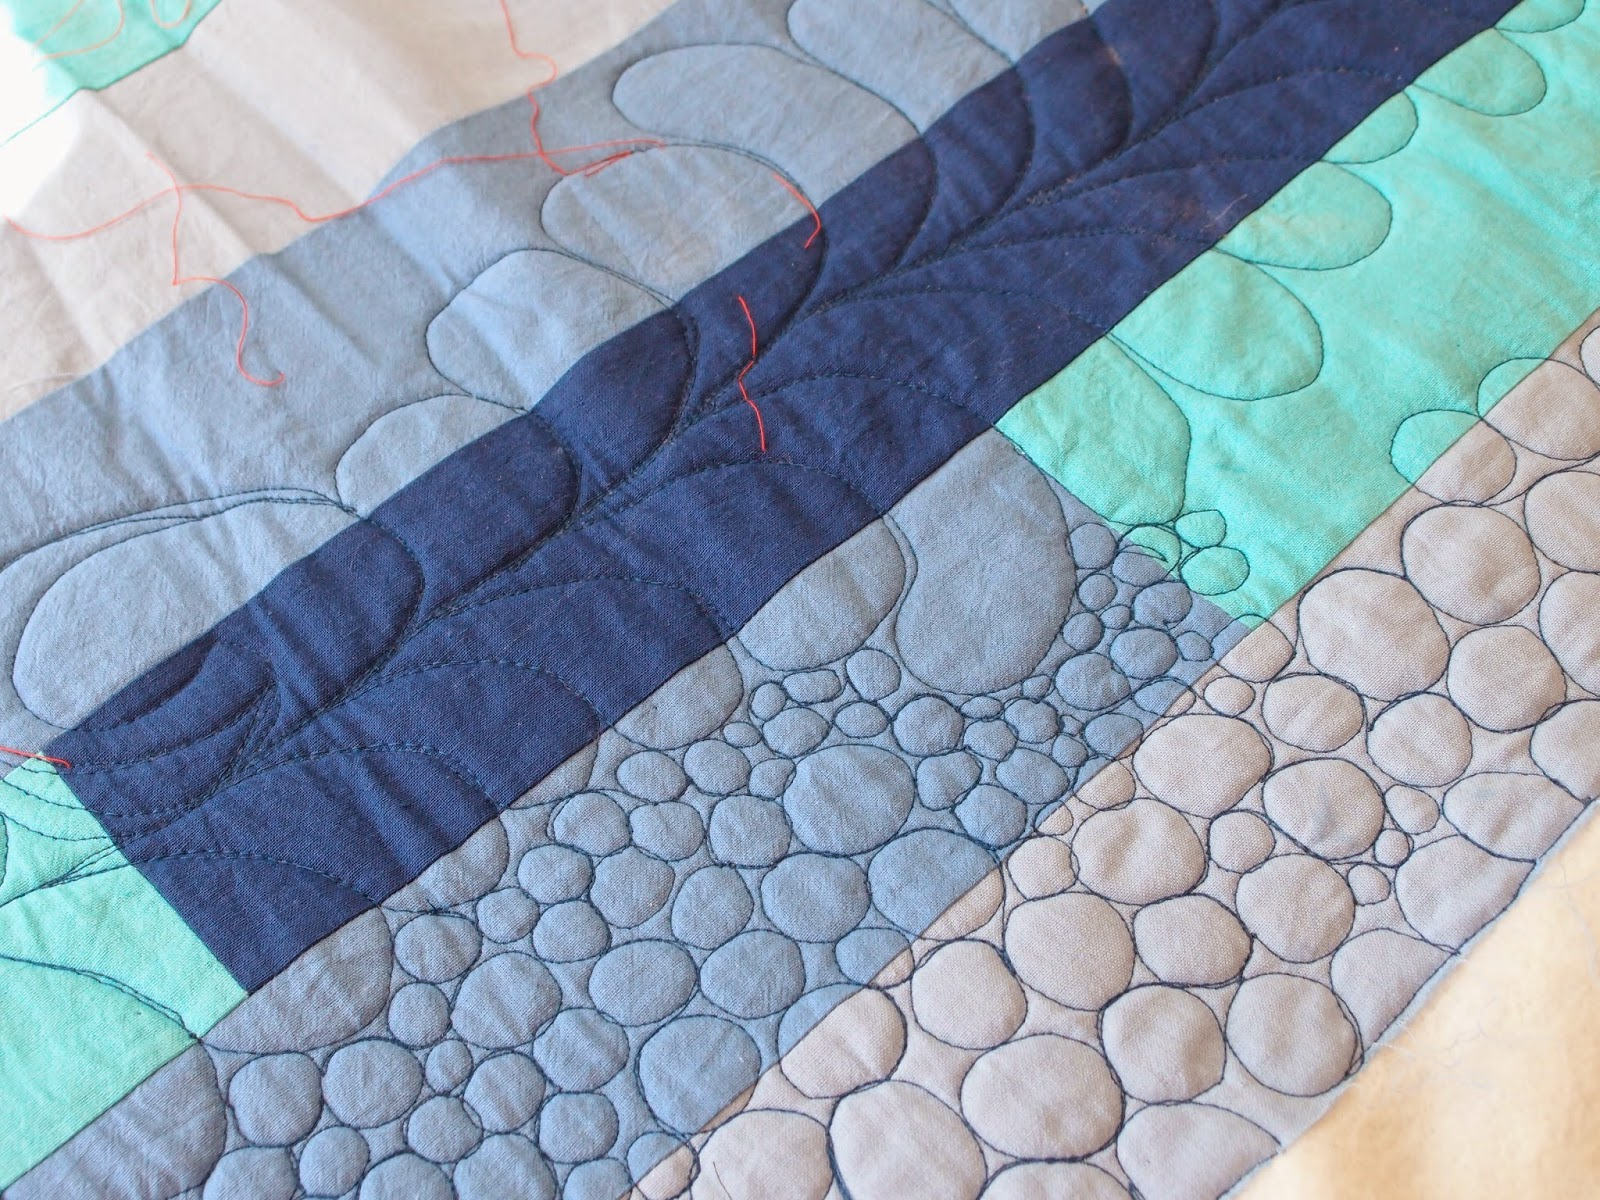 quilitng in progress - blue quilt